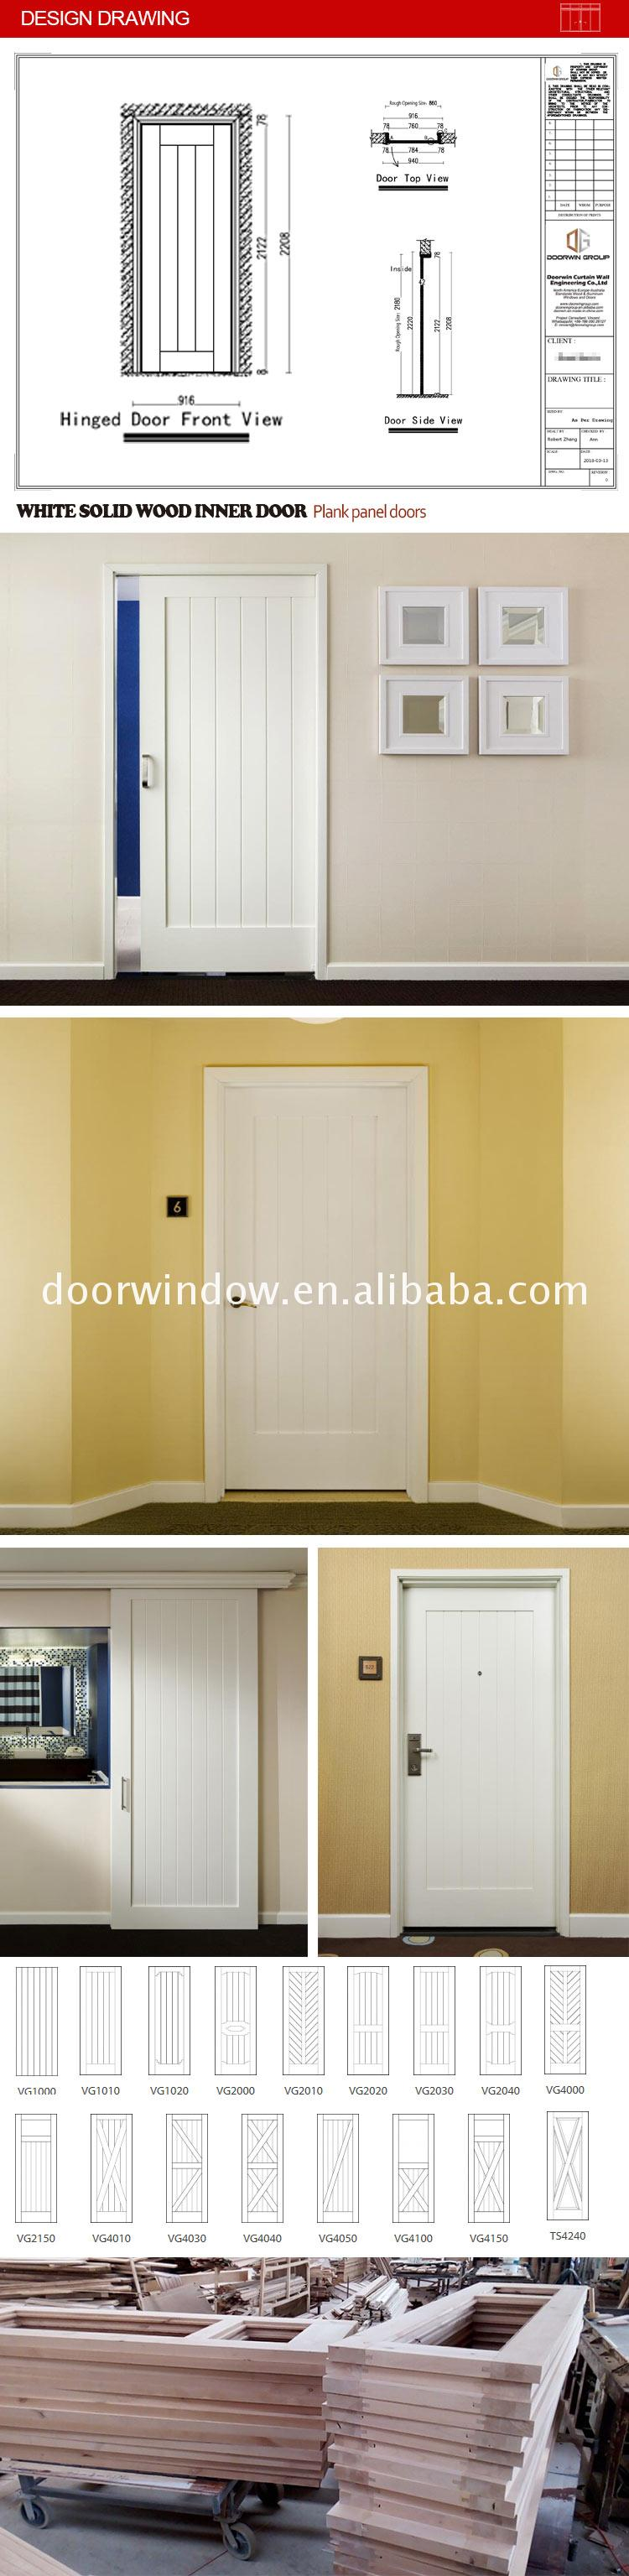 China Big Factory Good Price living room door ideas design light oak veneer doors